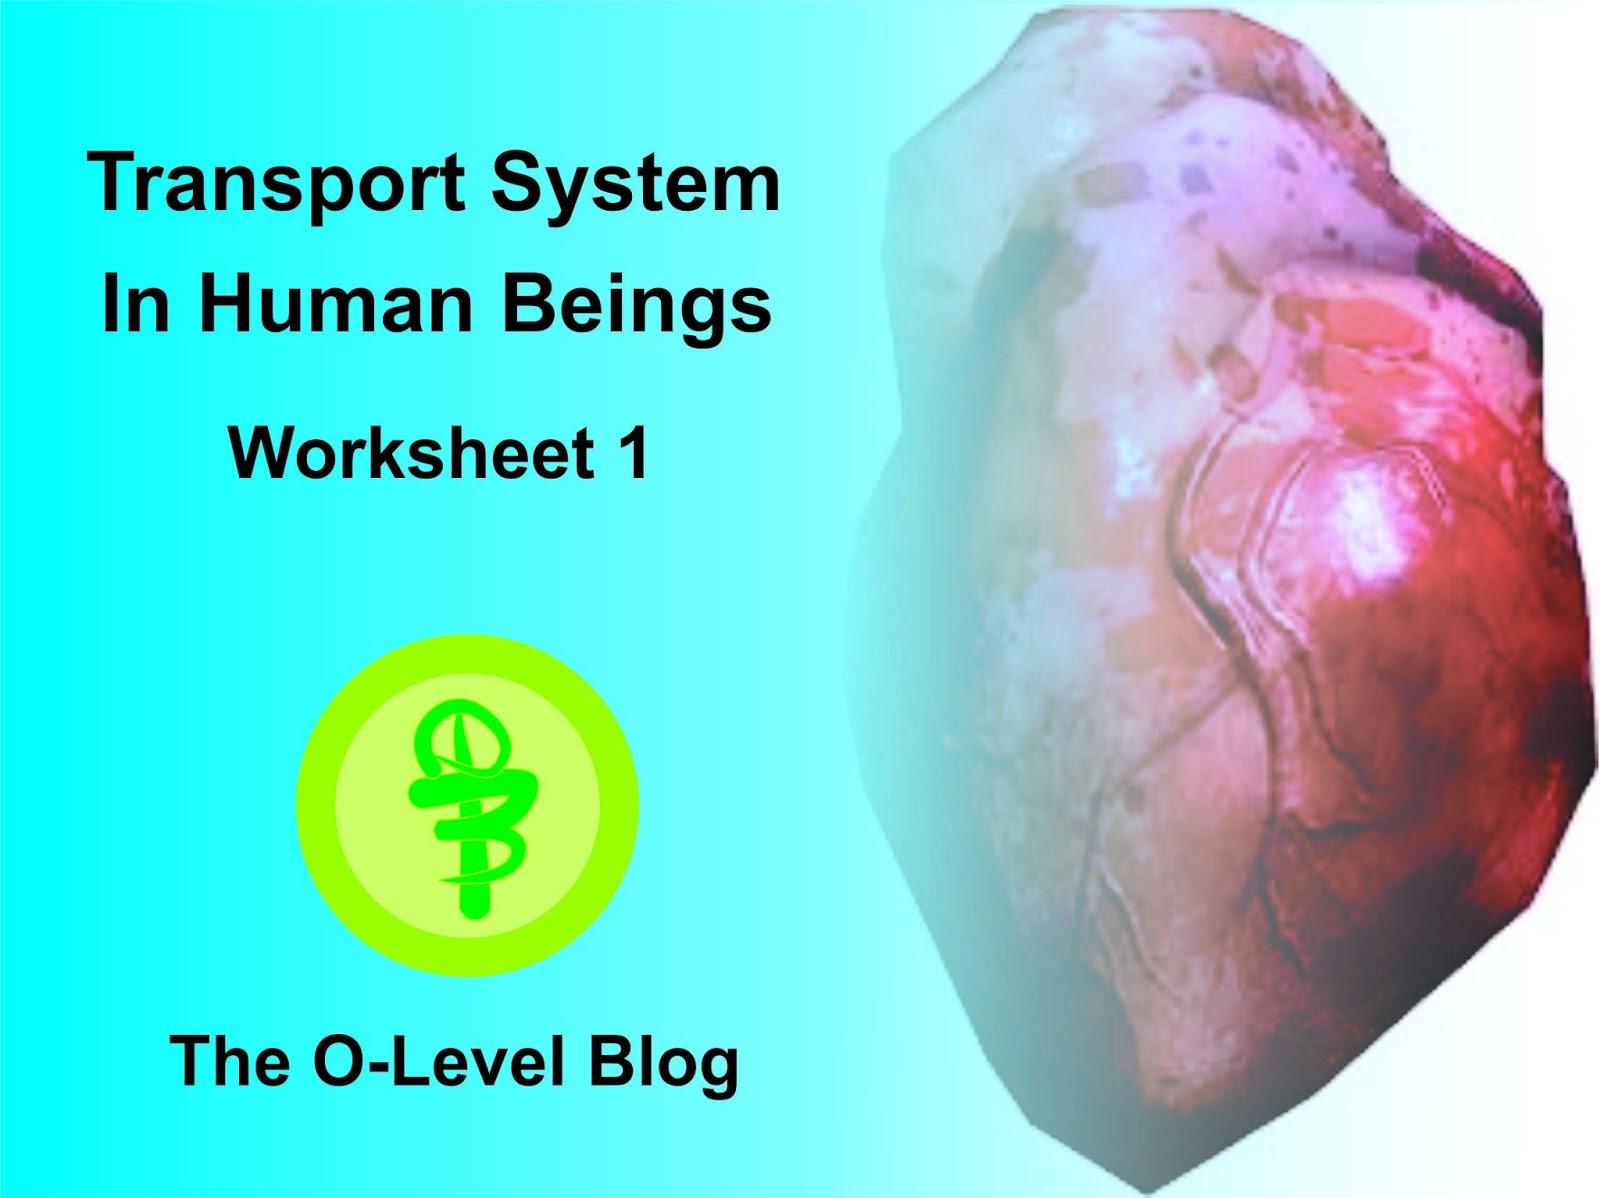 Transport System In Human Beings